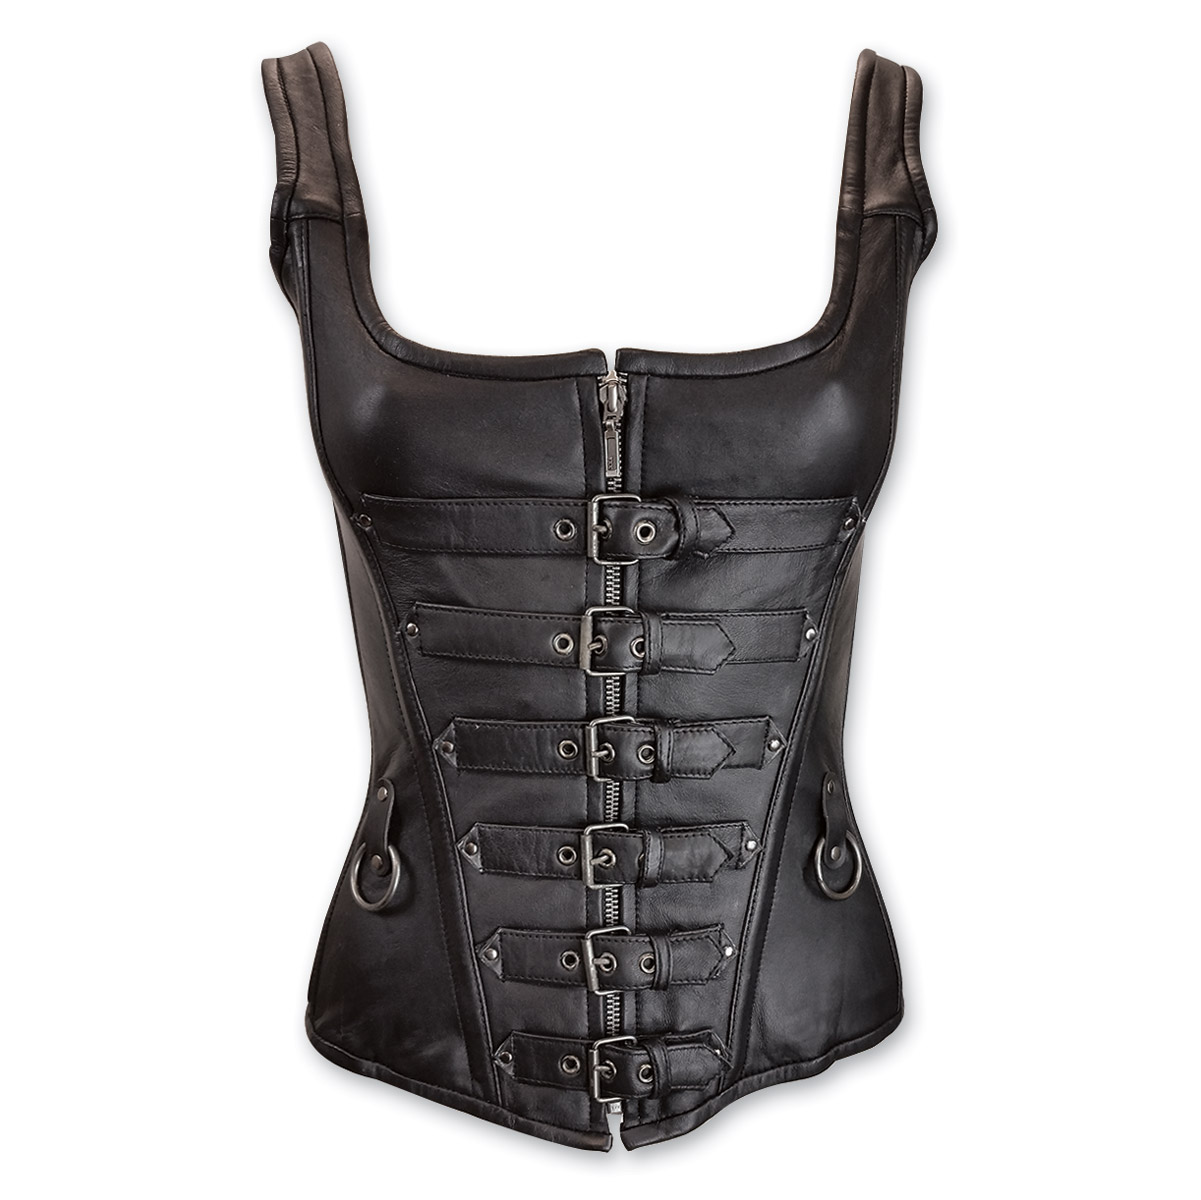 Vance Leathers Women's Rings and Straps Black Leather Corset - Vance Leathers Women's Rings And Straps Black Leather Corset 753